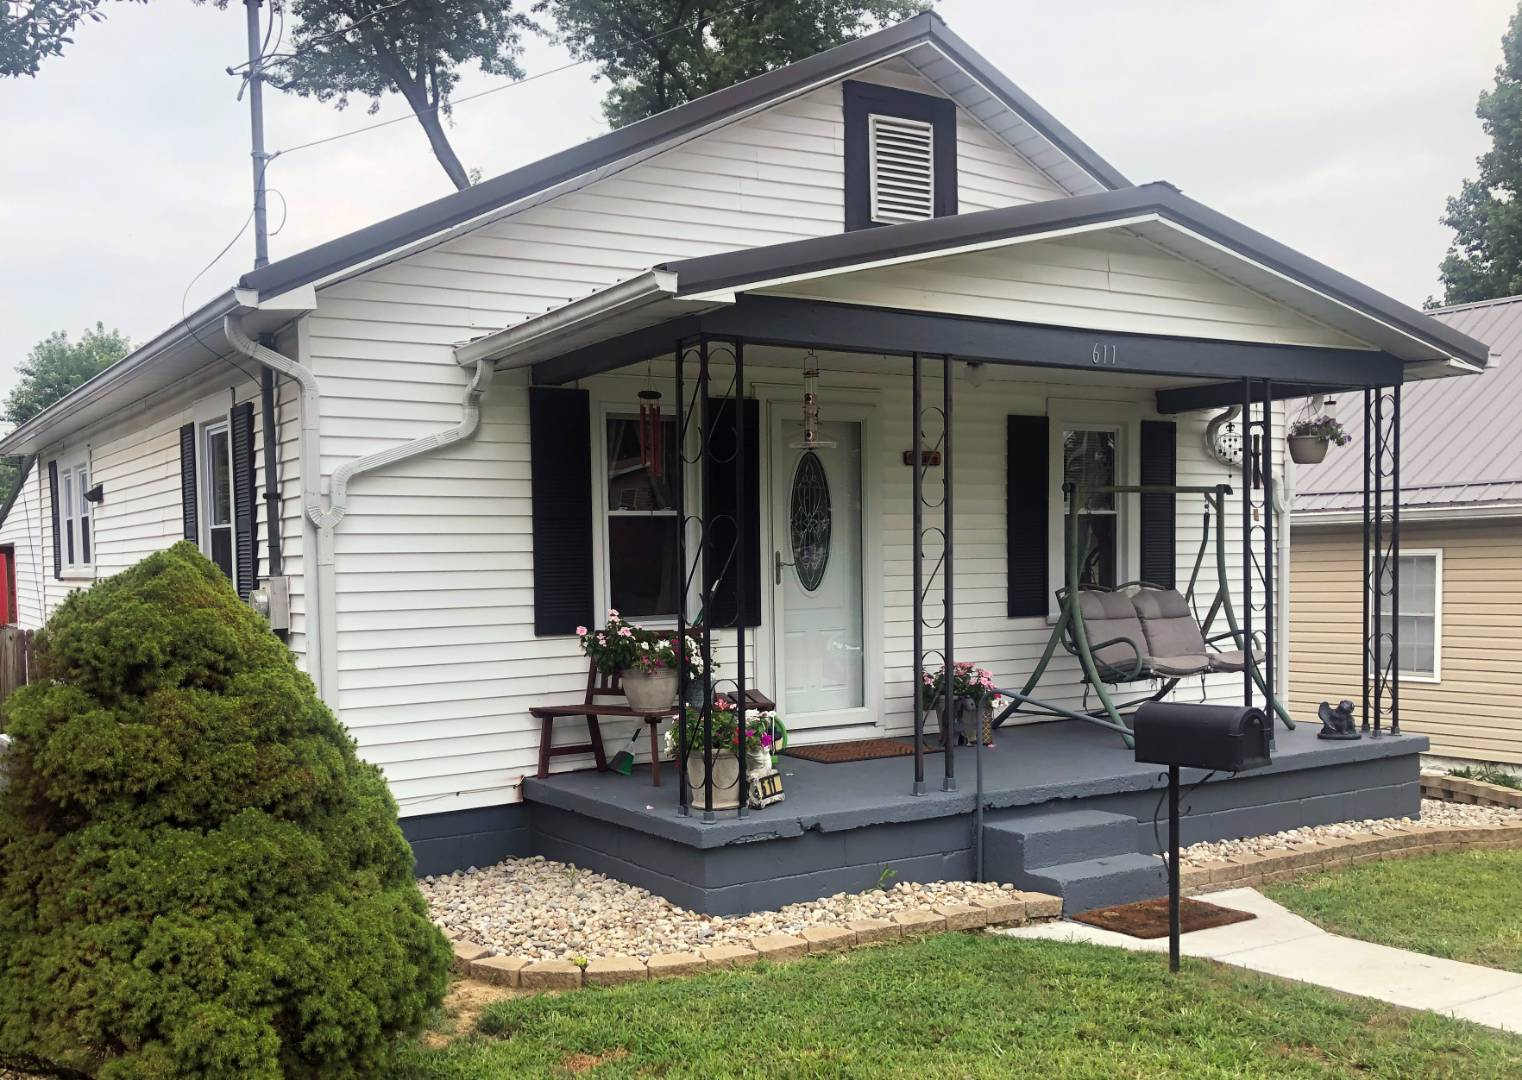 Adorable home with a new roof, windows & more!